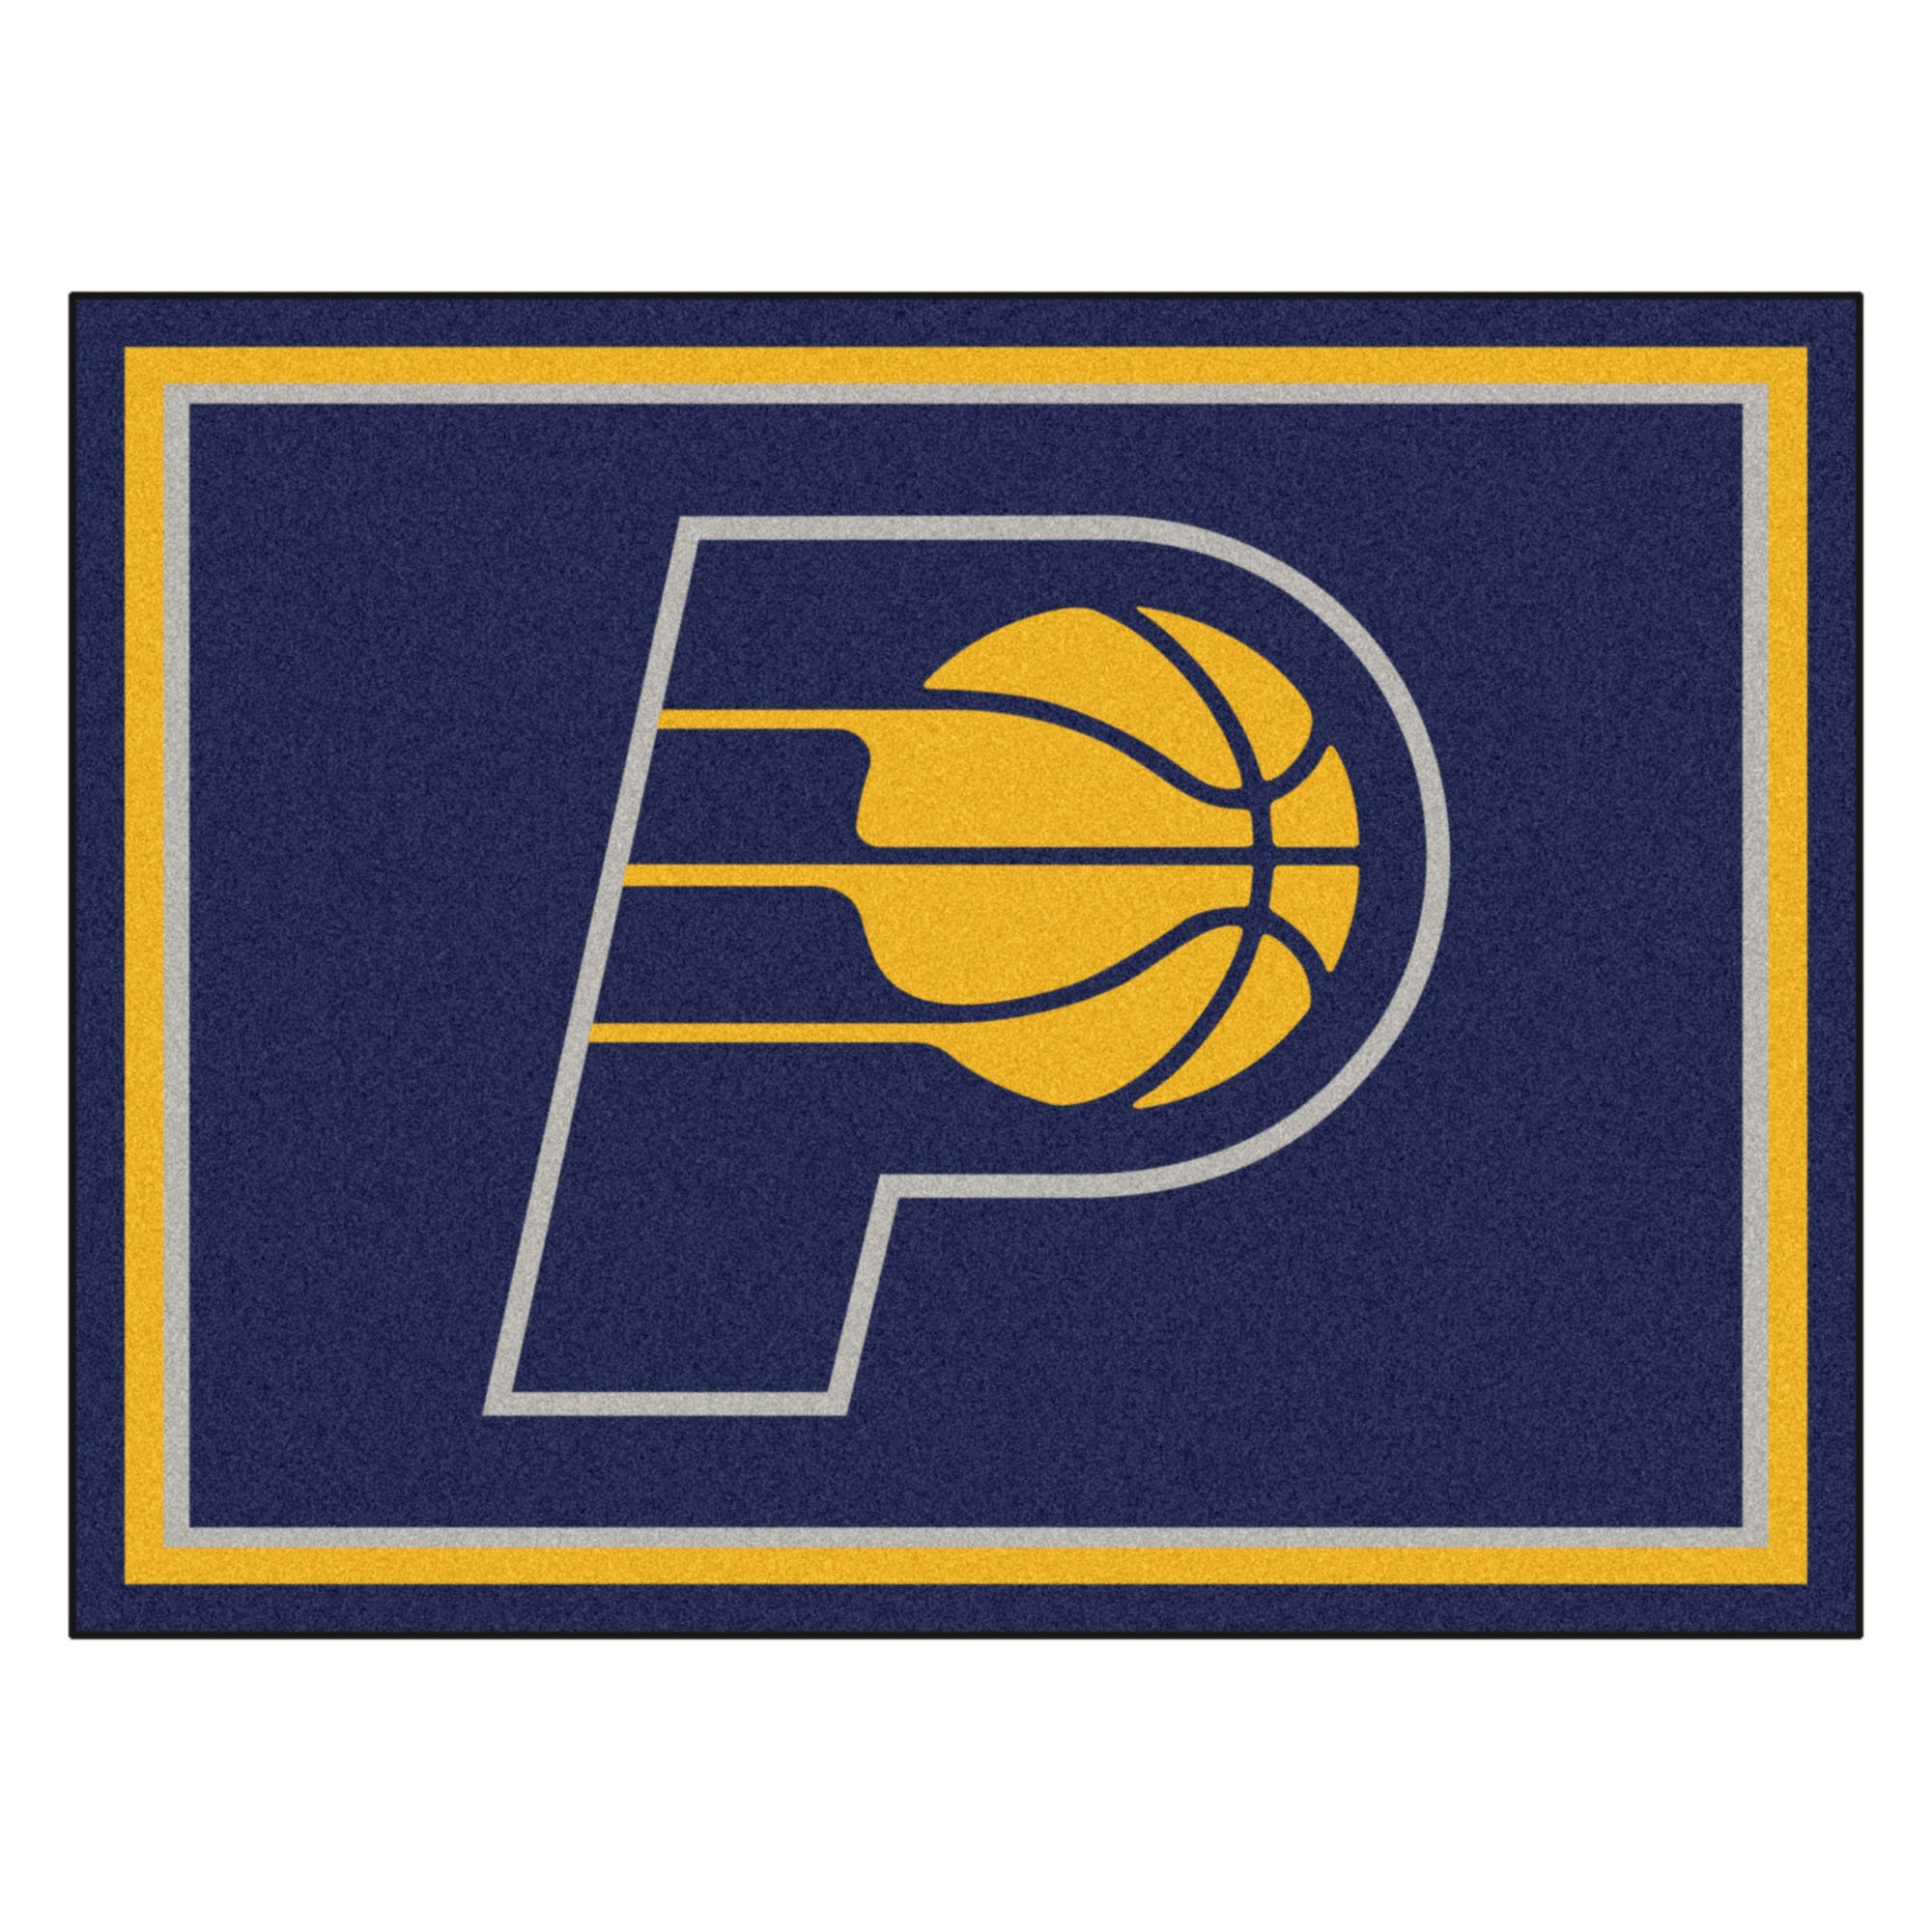 FANMATS 17453 NBA Indiana Pacers Rug